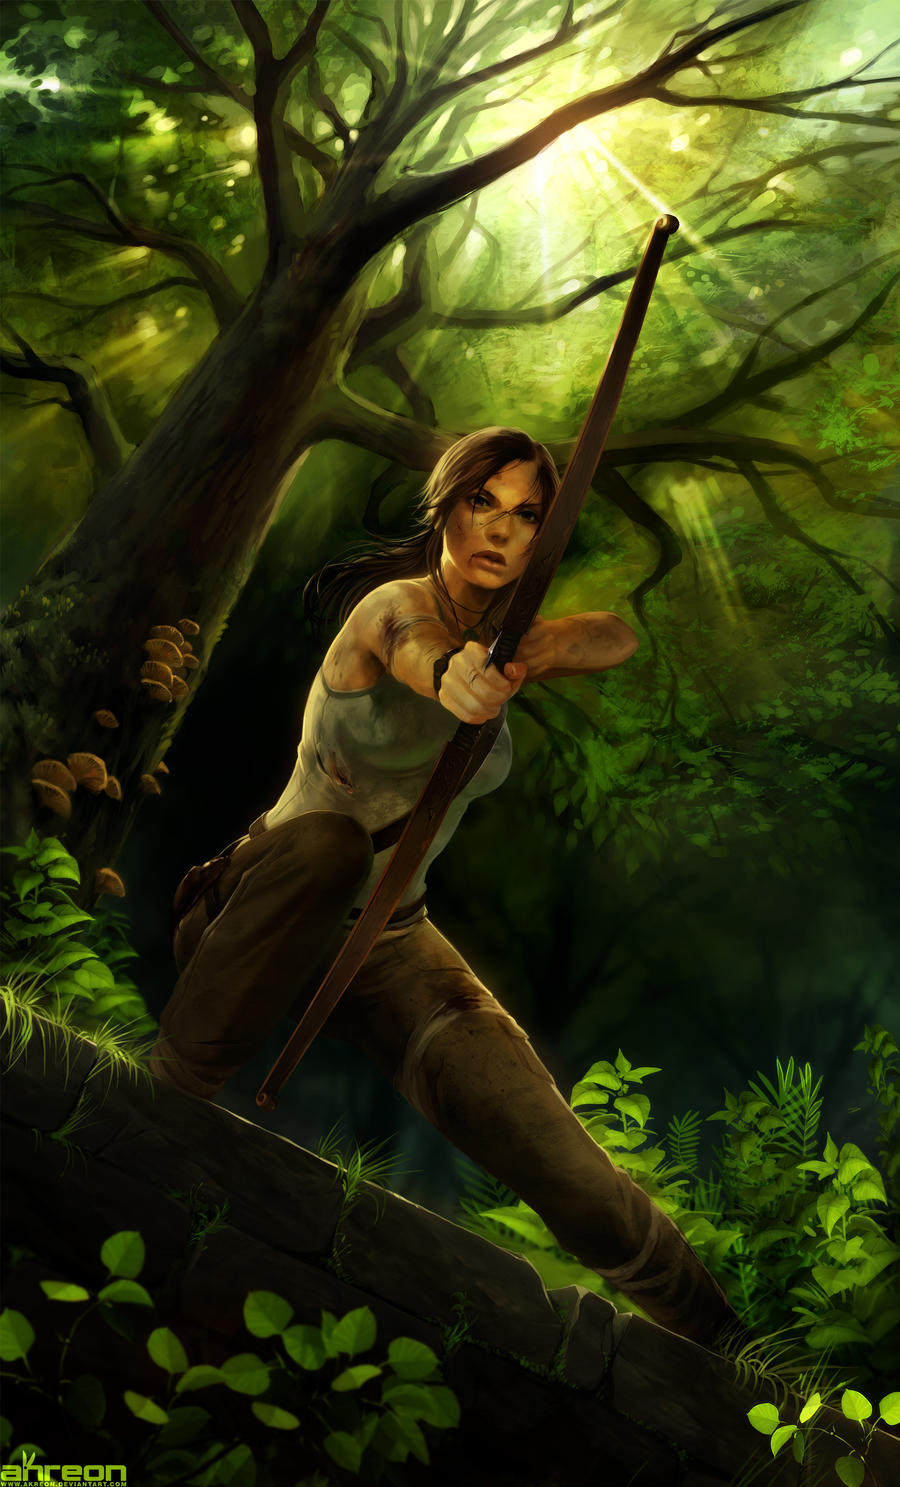 Tomb Raider by akreon